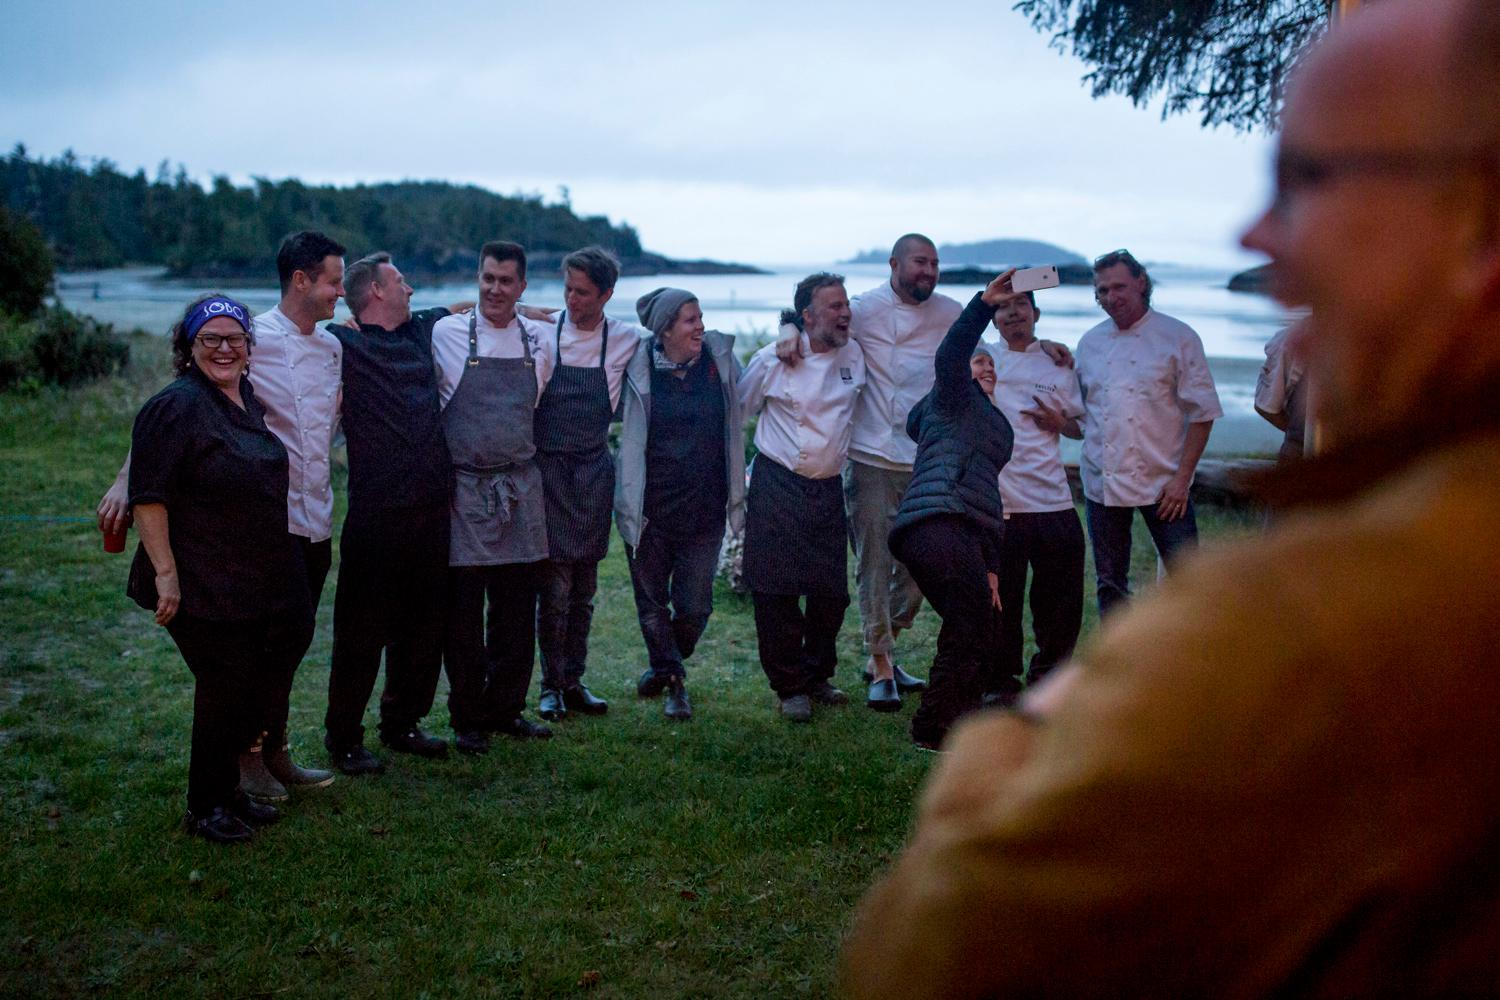 A hundred guests gathered around for the third annual Feast Tofino Long Table Dinner to experience the six courses prepared by local chefs, and hosted by Food Network's celebrity chef Lynn Crawford. The local chefs were Lora Kirk of Ruby Watcho, Tim May of Red Can Gourmet, Robbie Elliot of Shelter, Lisa Aheir of SOBO, Paul Moran of Tofino Resort + Marina, Warren Barr of The Pointe at the Wickaninnish Inn, and Nick Nutting of the Wolf In The Fog. This is was one memorable experience! (Sy Bean / Seattle Refined)